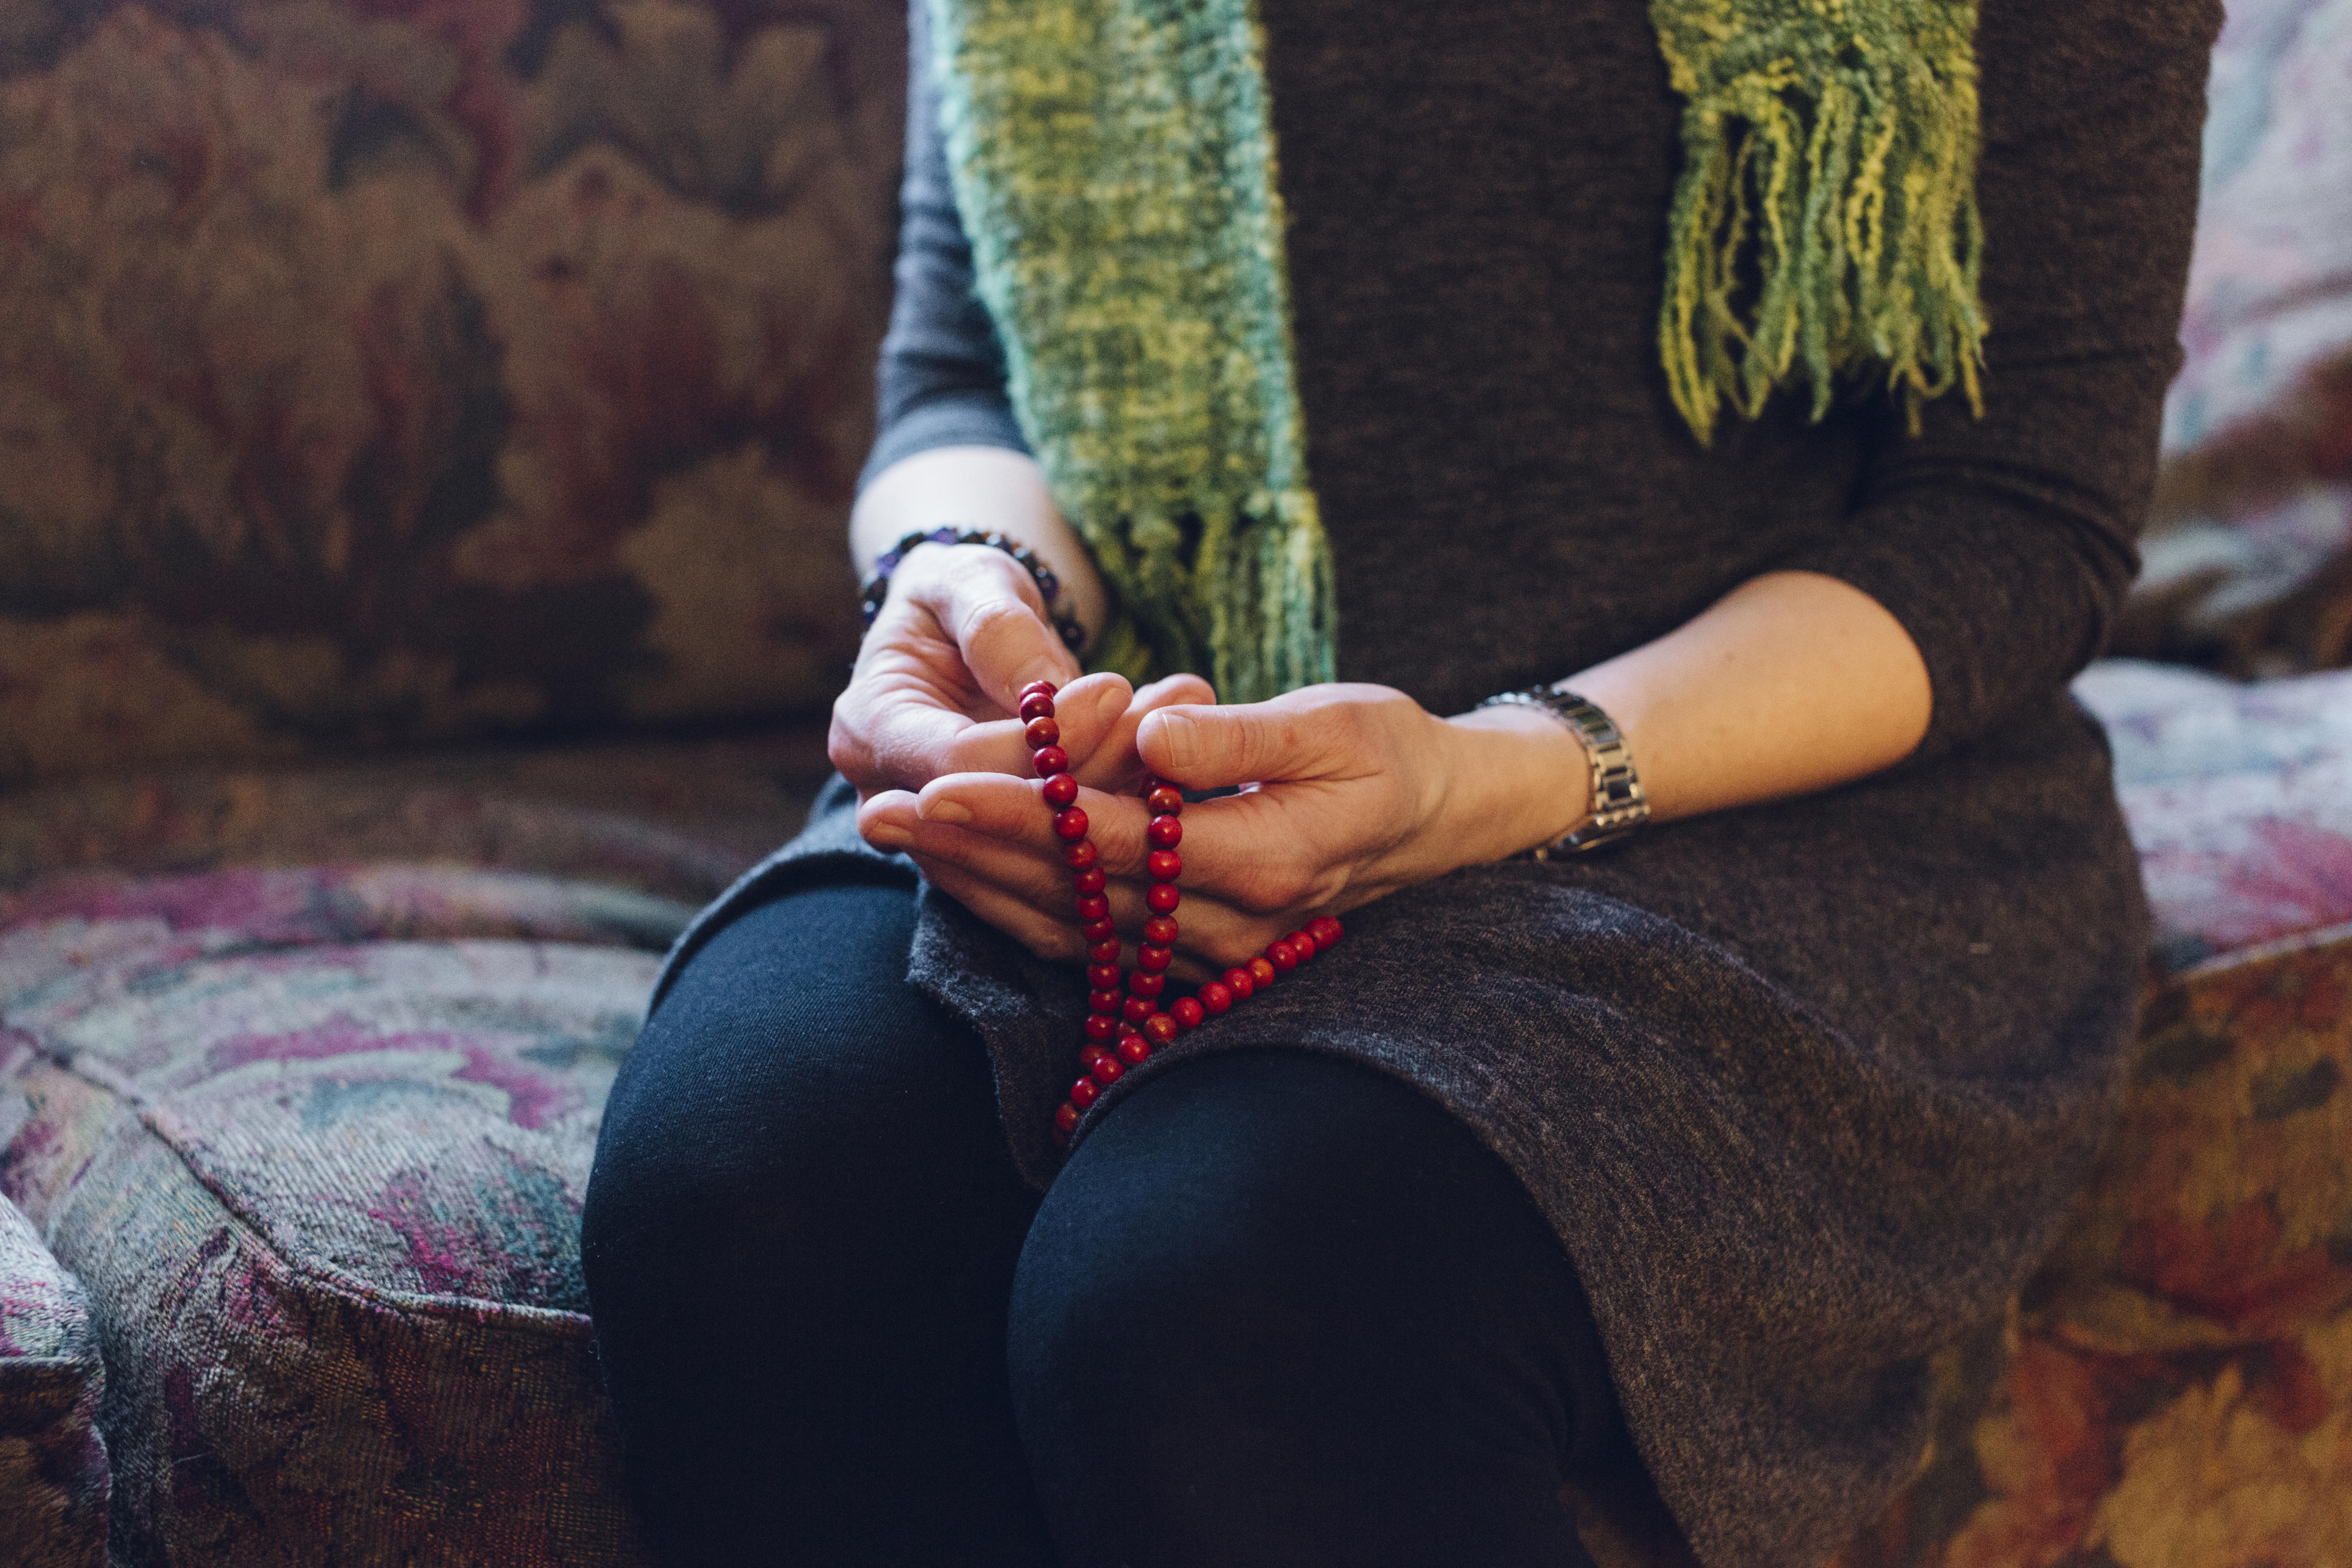 Laura Alary holds a mala as she thinks about the specific things she's grateful for in her life